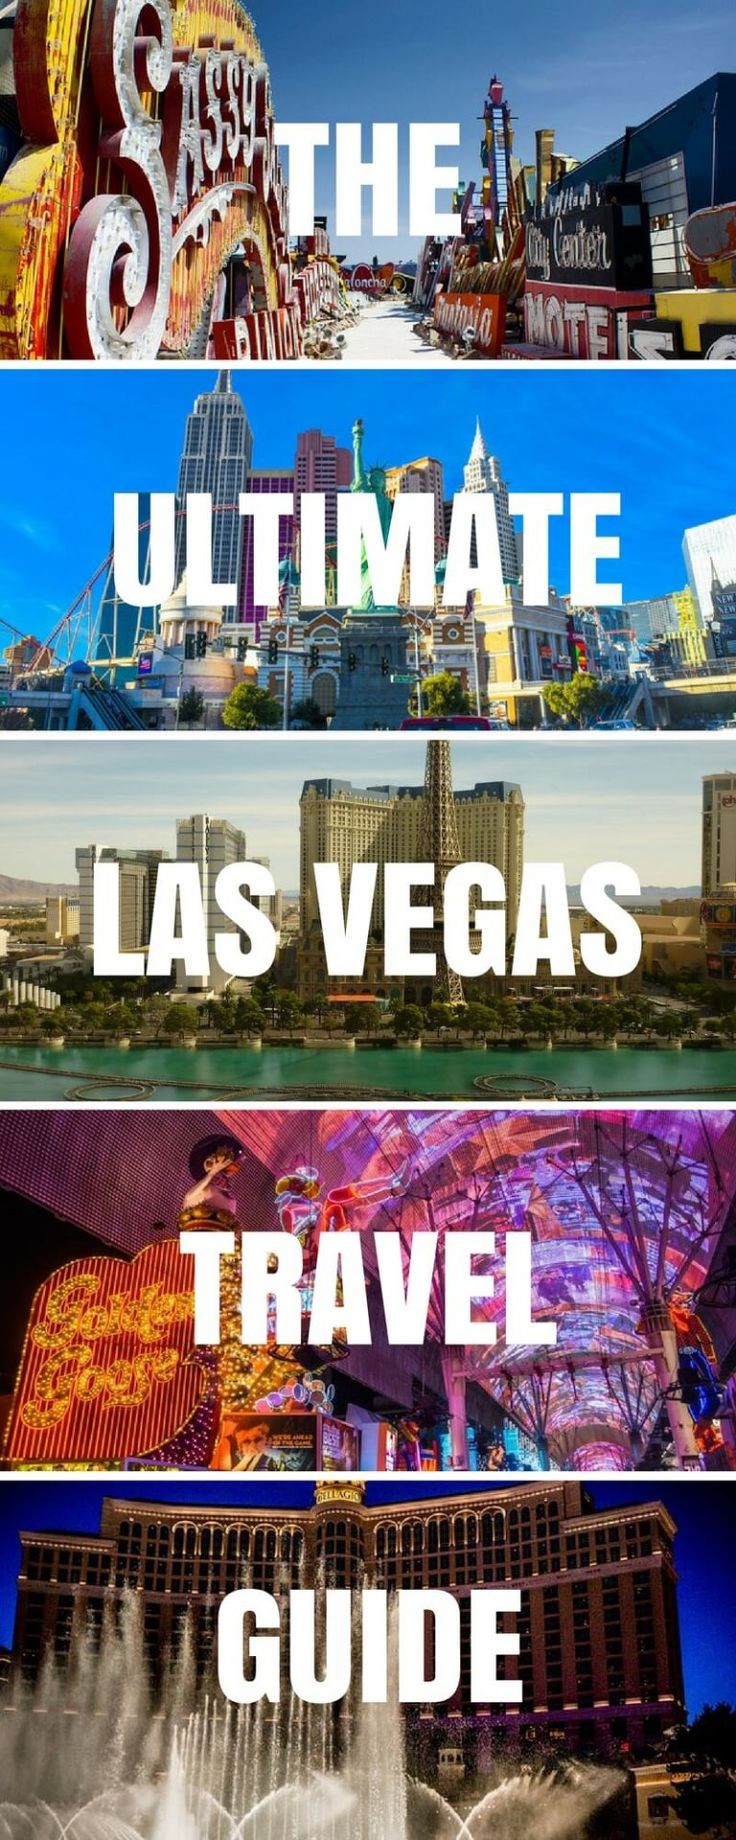 30 Best Created By Ads Bulk Editor 10 23 2017 220604 Images On Wiring Diagram Le Grand Hotel Room The Things To See Do Eat In Sin City